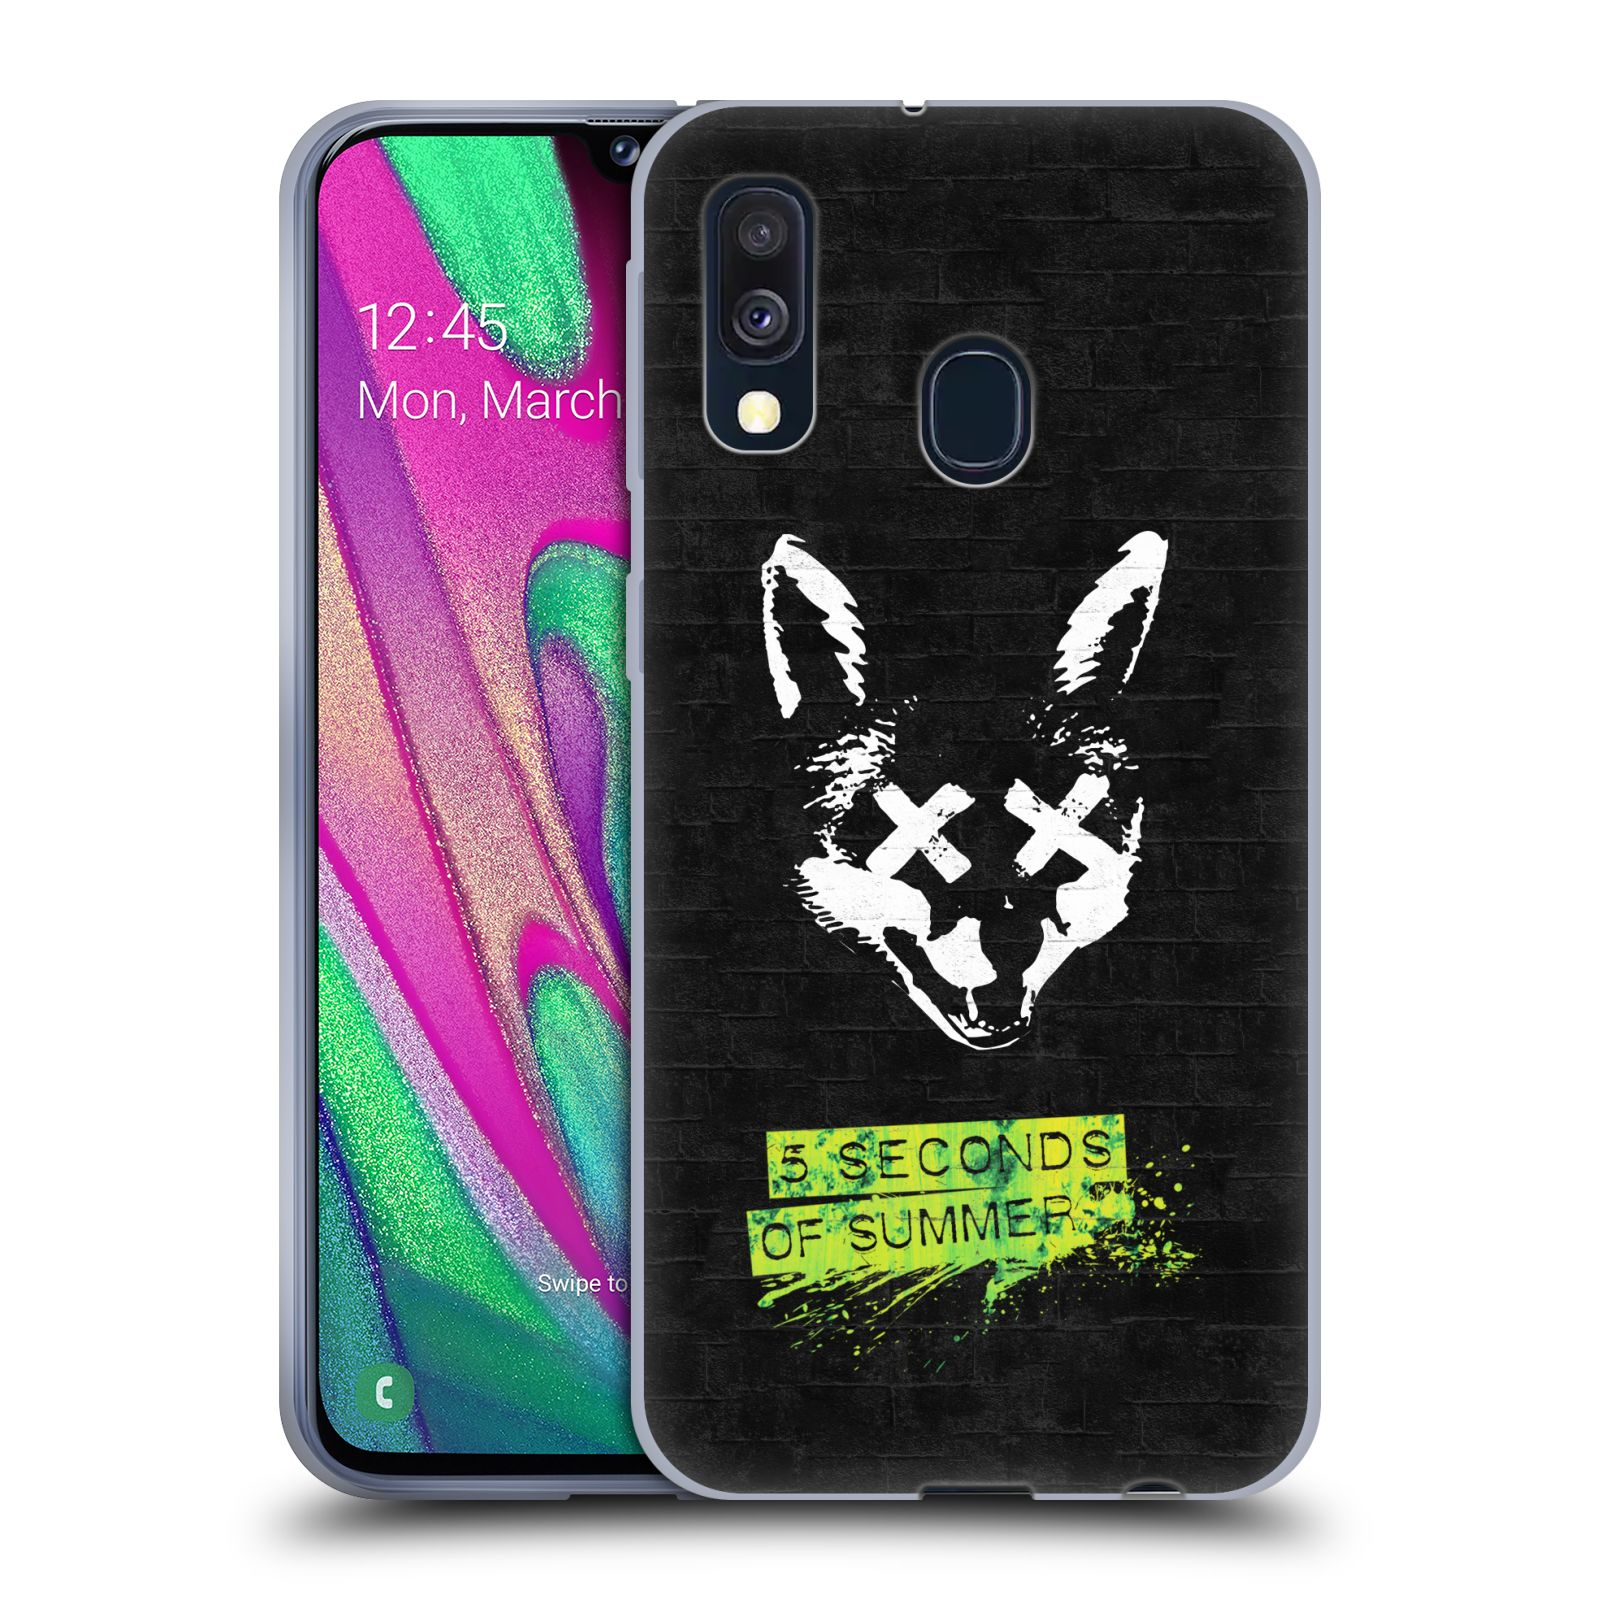 Silikonové pouzdro na mobil Samsung Galaxy A40 - Head Case - 5 Seconds of Summer - Fox